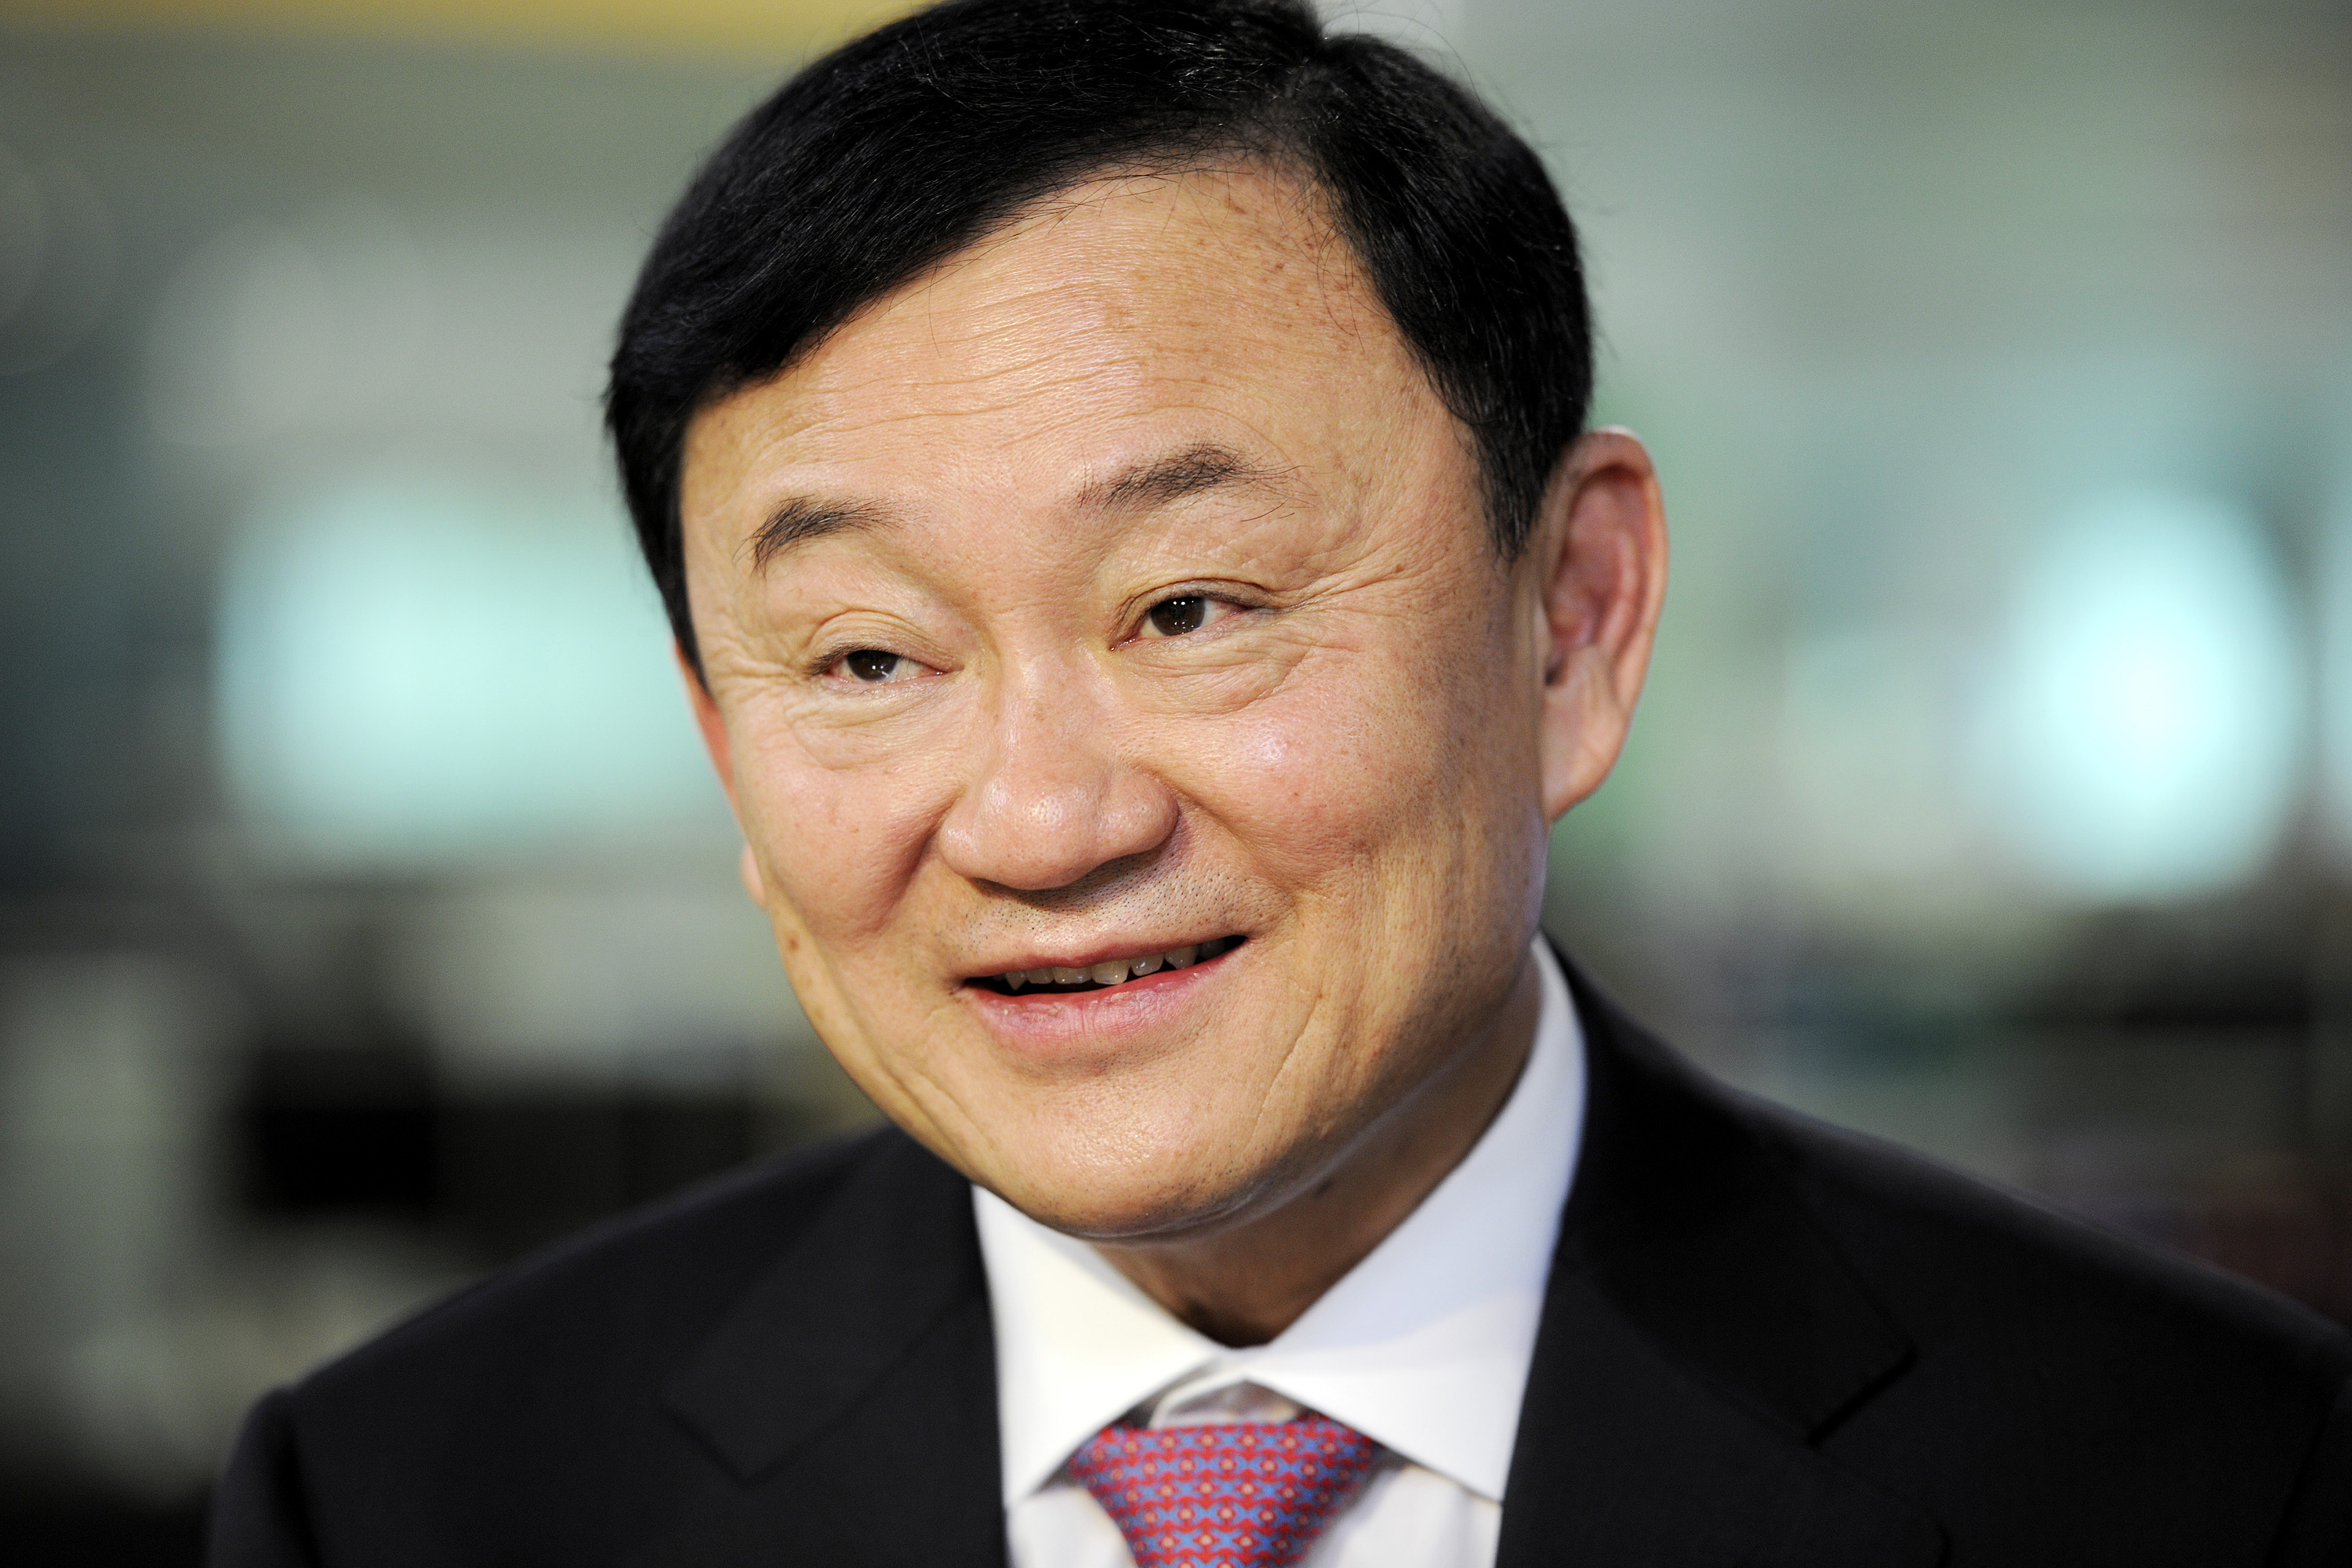 Thaksin Shinawatra, former prime minister of Thailand, during an interview in Singapore, on Sept. 24, 2012.